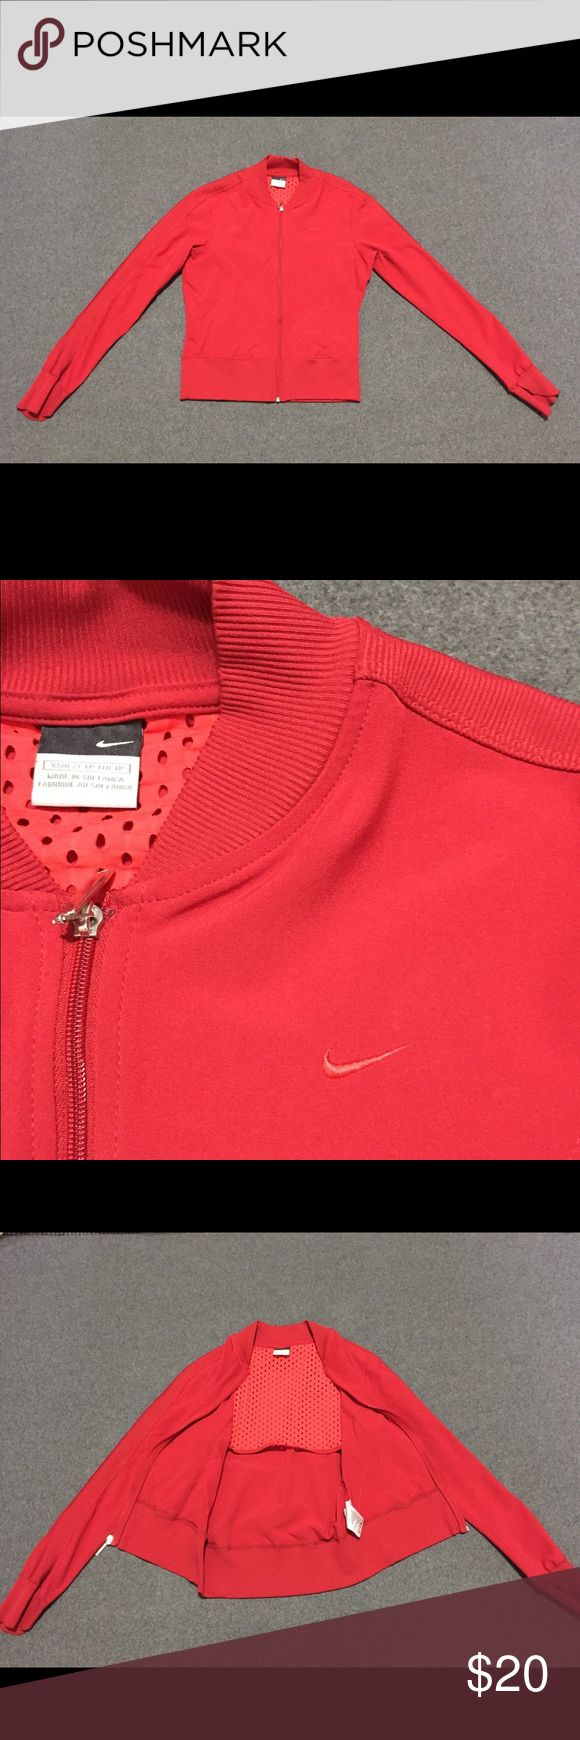 Lightweight Nike Jacket This red Nike jacket is the perfect lightweight cover-up for any activity. It has light mesh lining on upper-back, pockets, and unique cuff detail (shown in picture). The polyester-spandex blend fabric allows some stretch which would be great for running, walking, tennis, etc. Cropped fit with elastic at waist for flattering fit. Some slight signs of wear along cuffs, but otherwise in good condition! Nike Jackets & Coats Utility Jackets